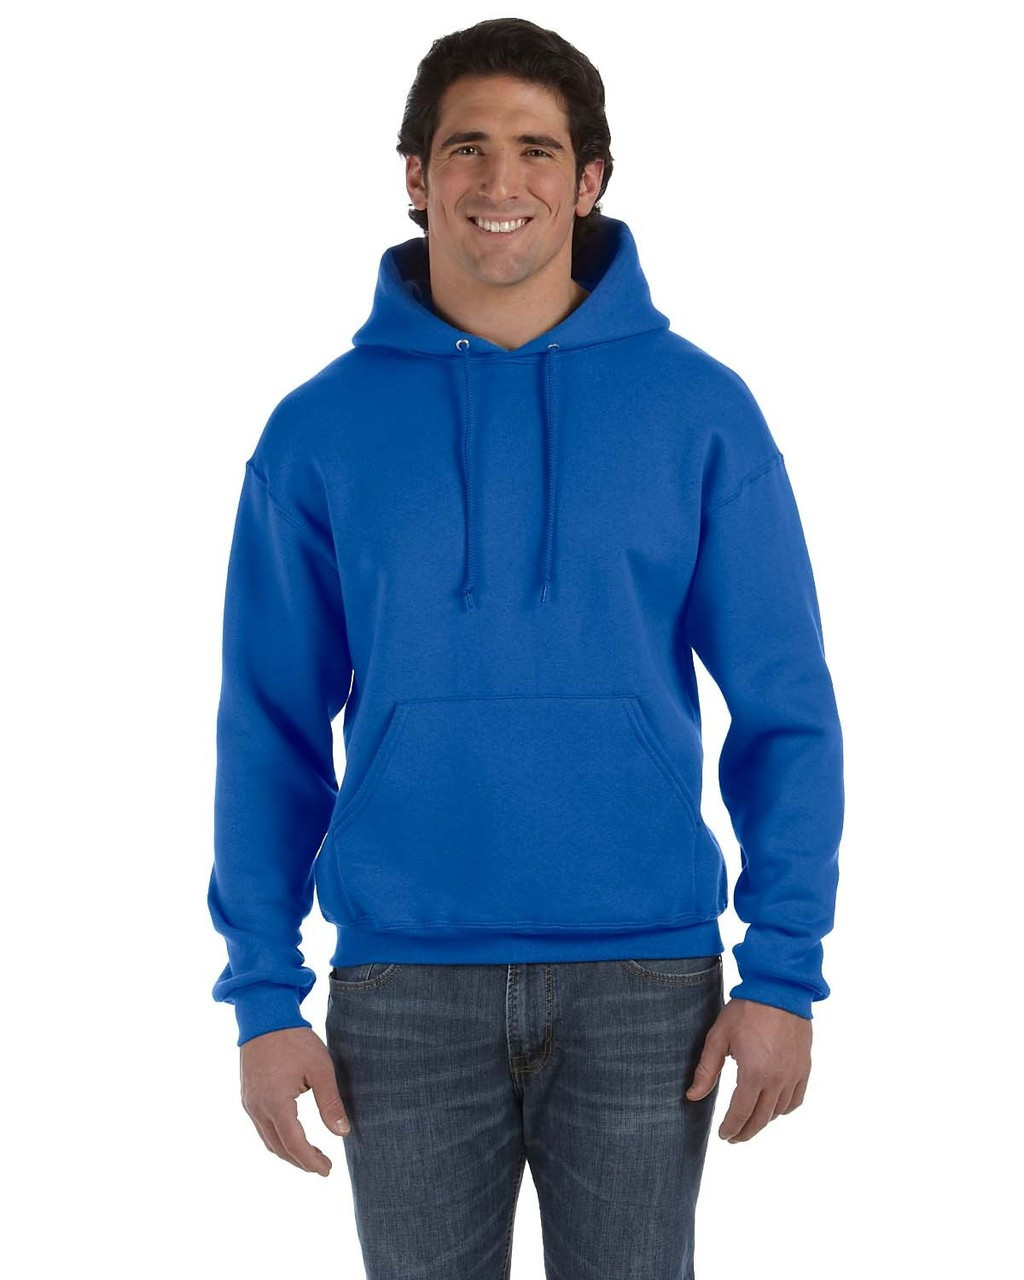 Royal - 82130 Fruit of the Loom Supercotton™ Pullover Hoodie | Blankclothing.ca